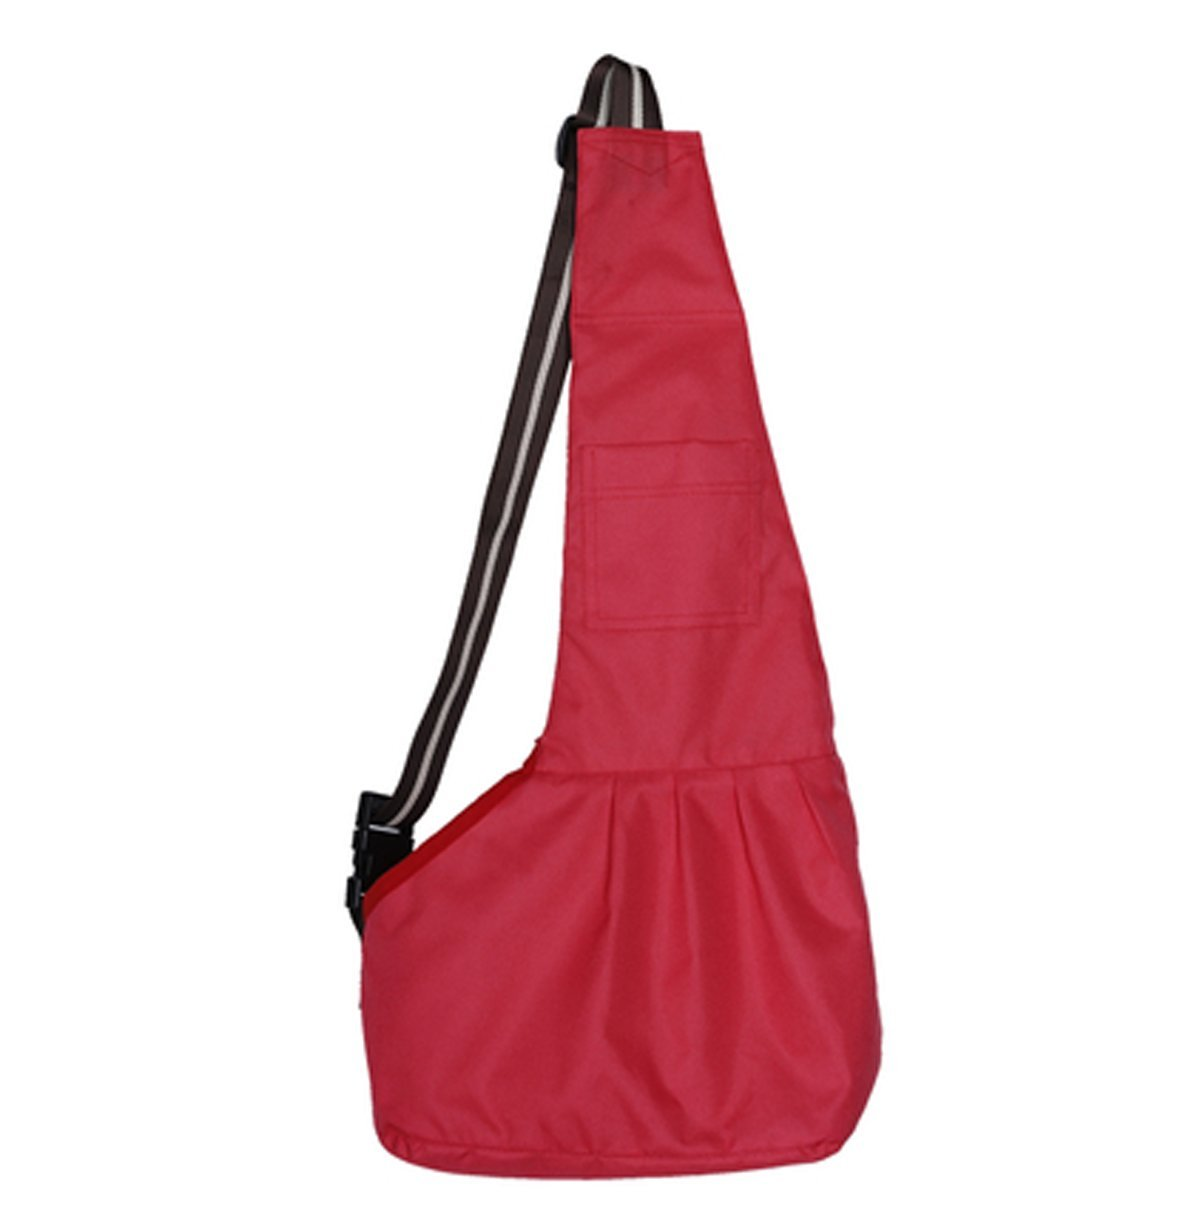 Prettysell Pet Dog Puppy Cat Carrier Bag Oxford Cloth Sling Single Shoulder Bag-Small,Red